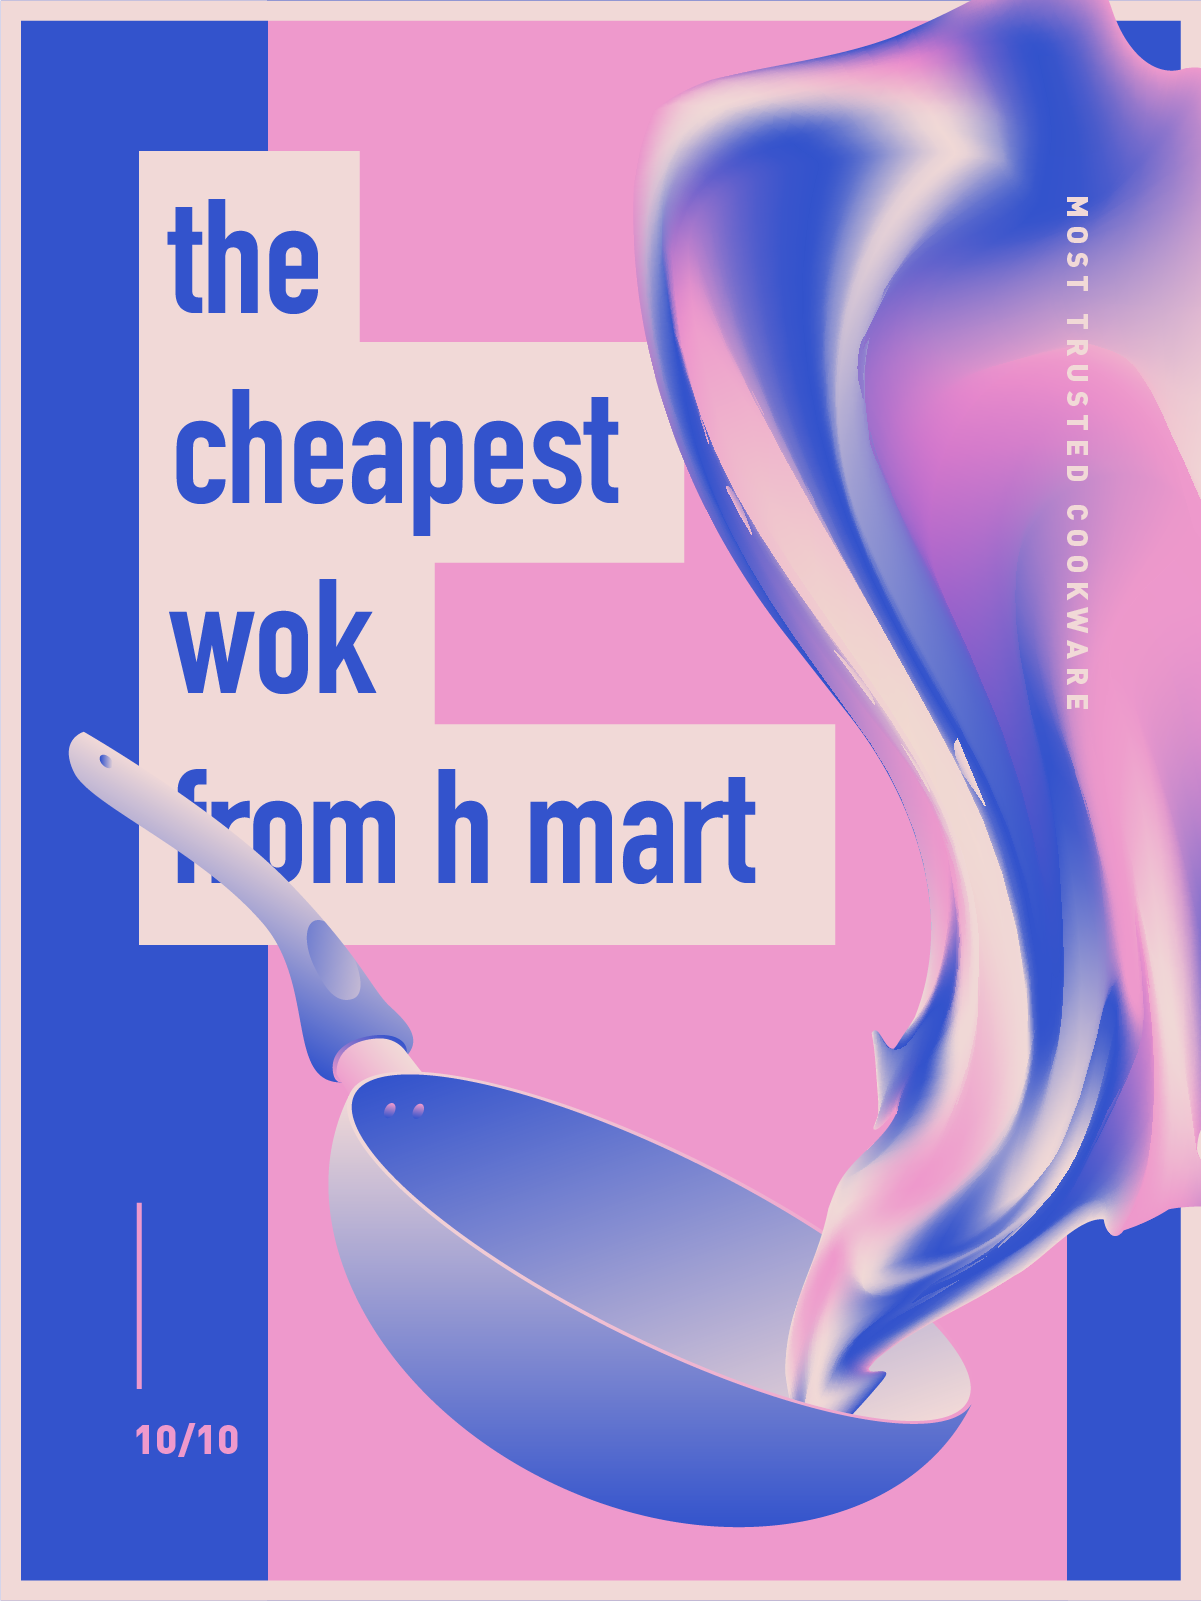 the cheapest wok from h-mart